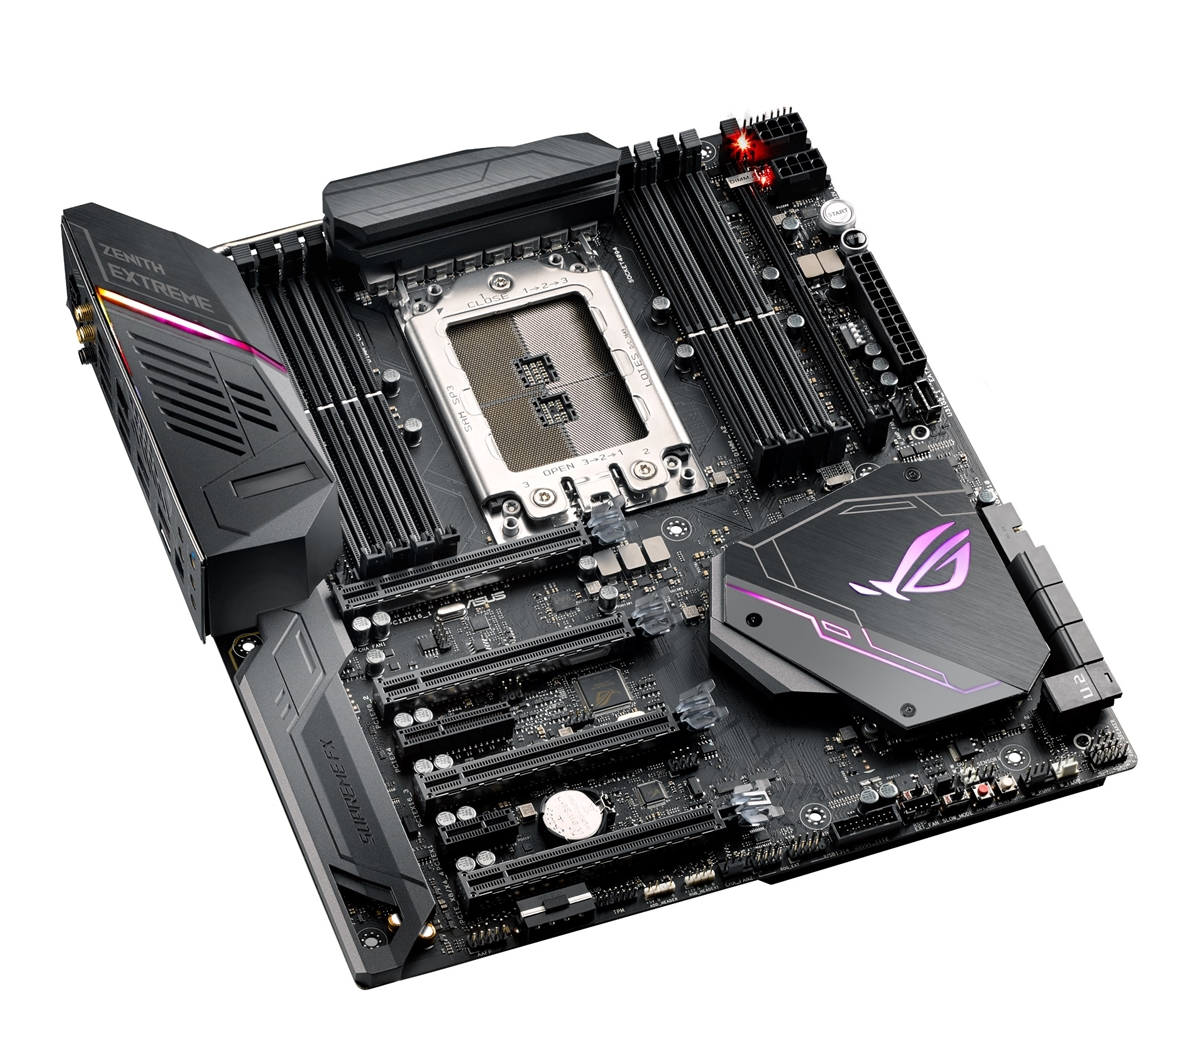 ASUS ROG Zenith Extreme 9